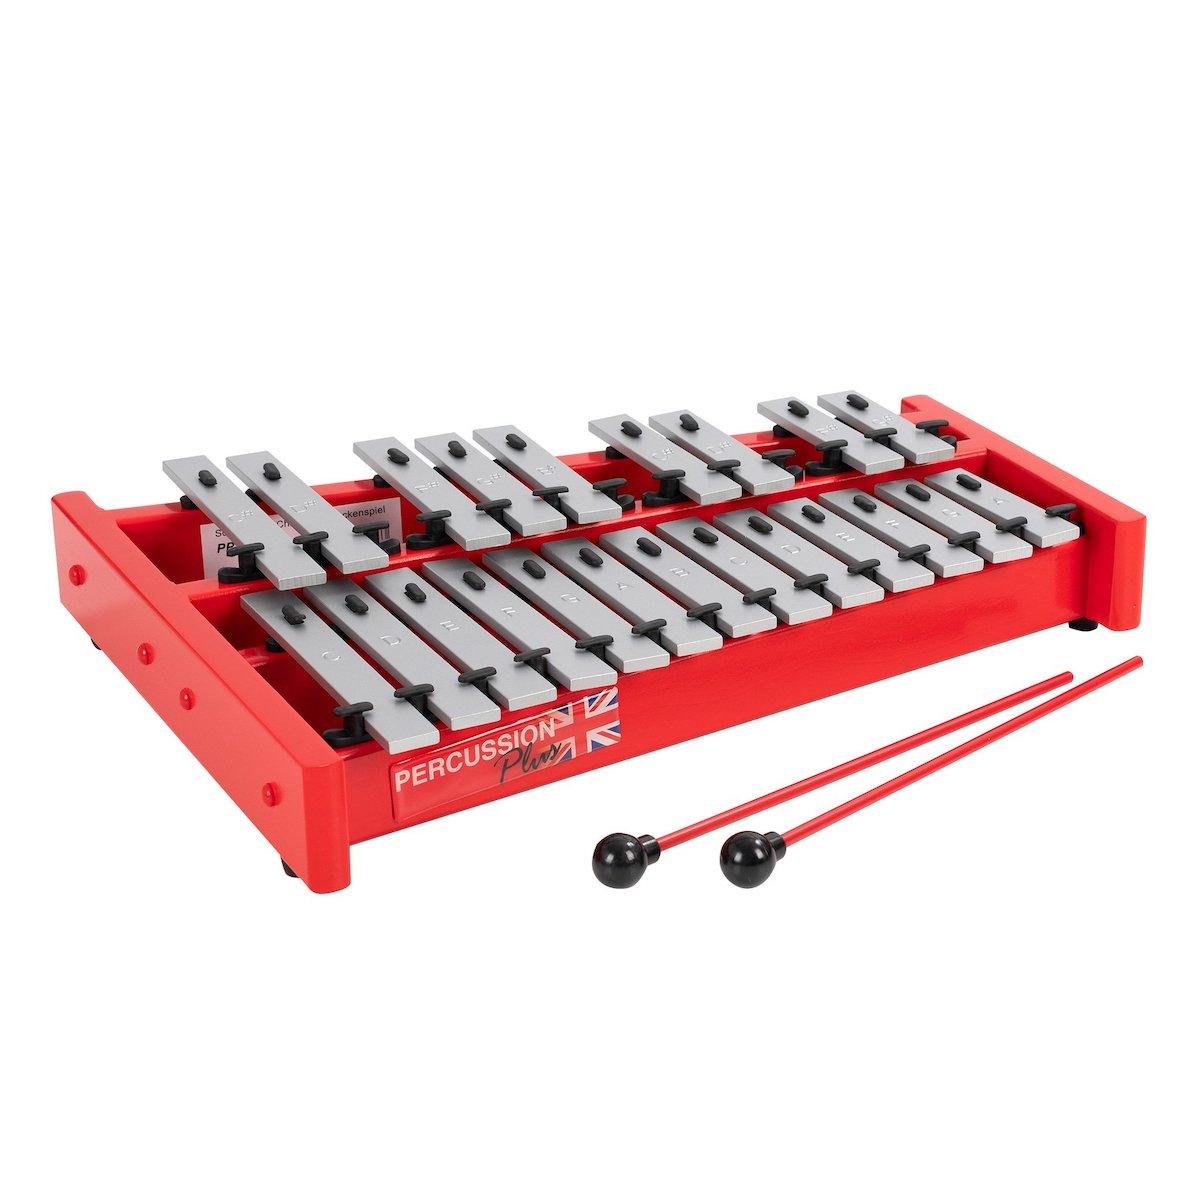 Percussion Plus Classic Red Box Soprano Glockenspiel - 1.5 octave